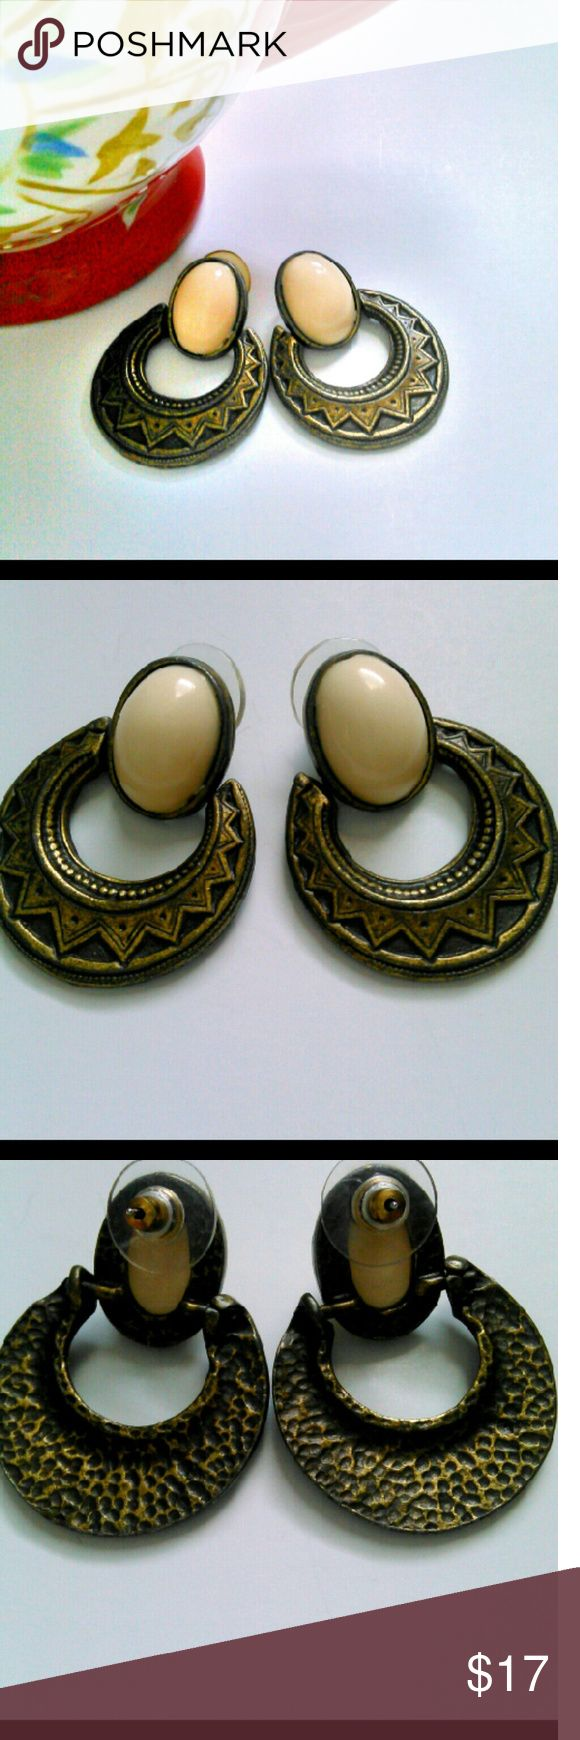 """HP Fashion FavoritesVintage Aztec  Earrings Vintage Aztec HP chosen by @emilywodock style pierced earrings with a cream colored stone. Approximately 1 3/4"""" long.  You'll look great in these gorgeous earrings!! Jewelry Earrings"""